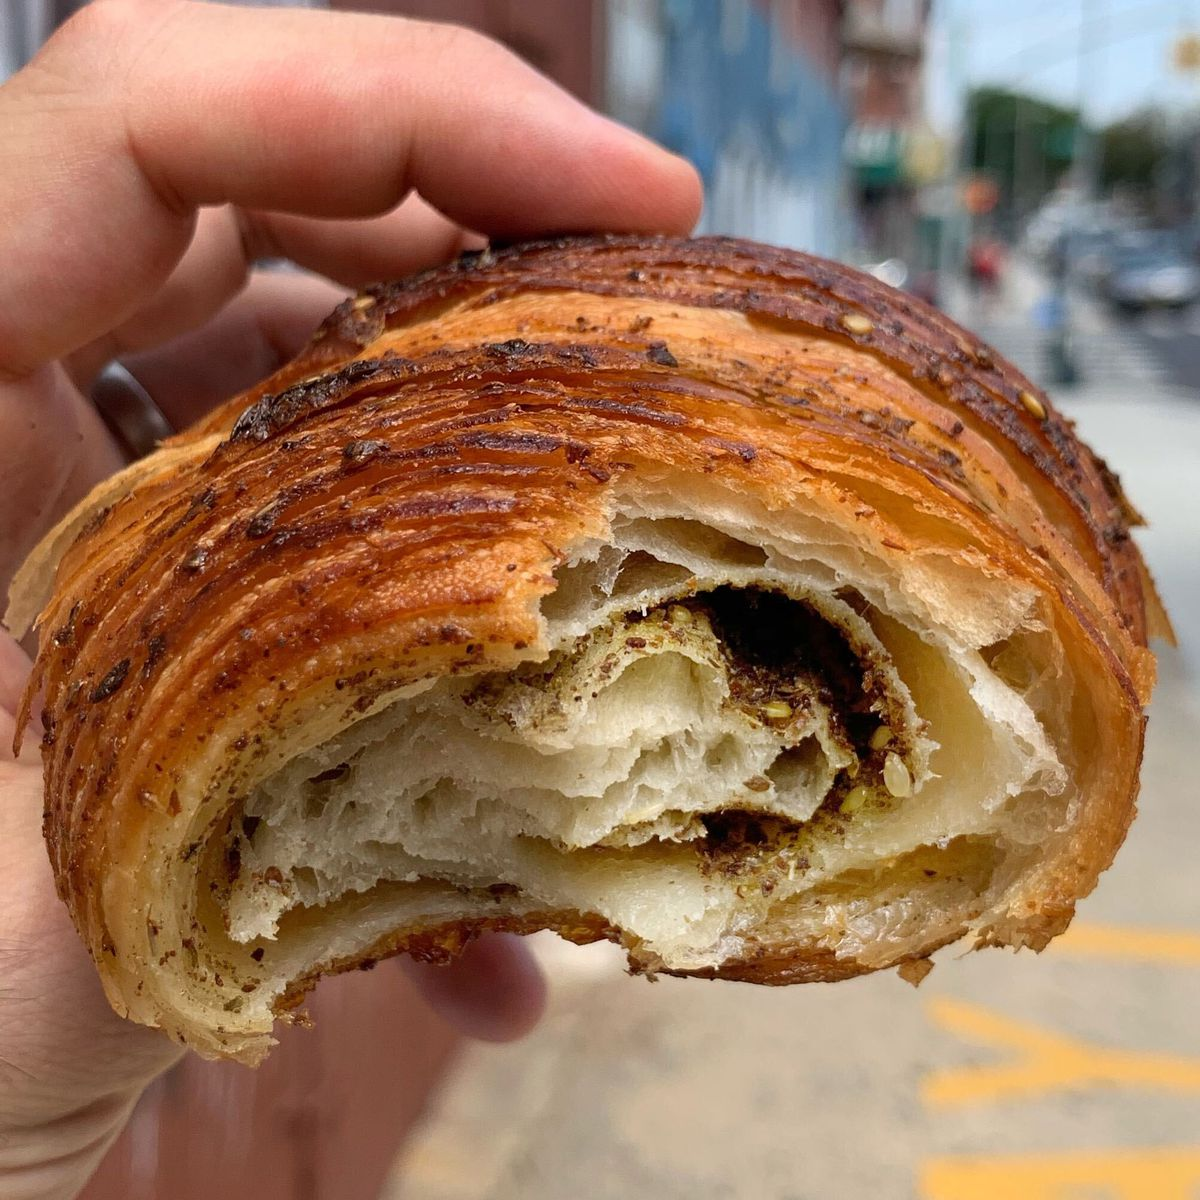 The cross-section of a croissant with a dark chocolate filling and flakey exterior